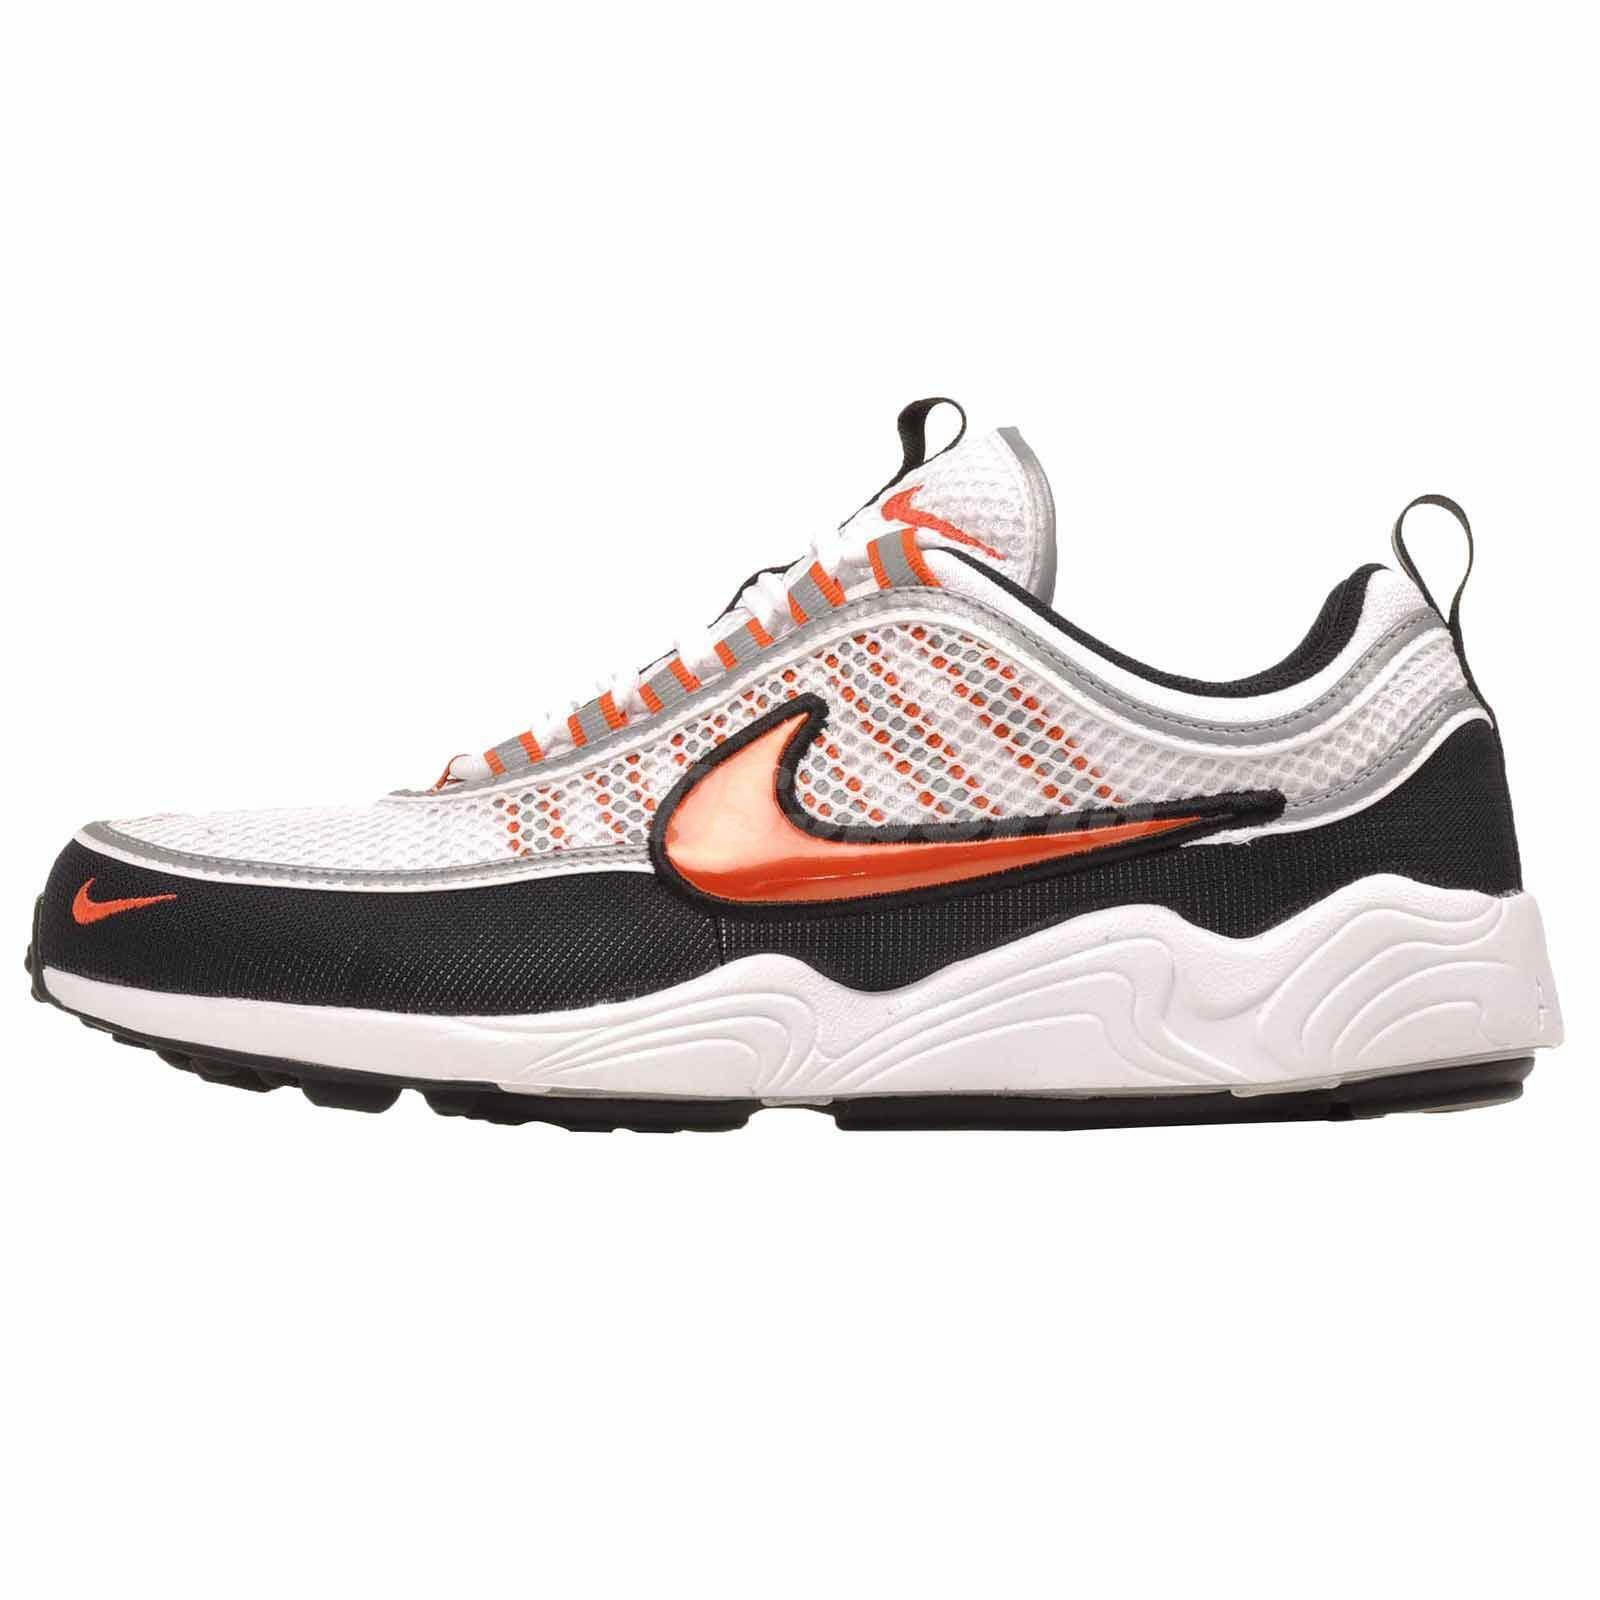 9ec4ee7ee69ba Nike Air Zoom Spiridon 16 Running Mens Shoes White White White Team Orange  926955-106 5b2c68